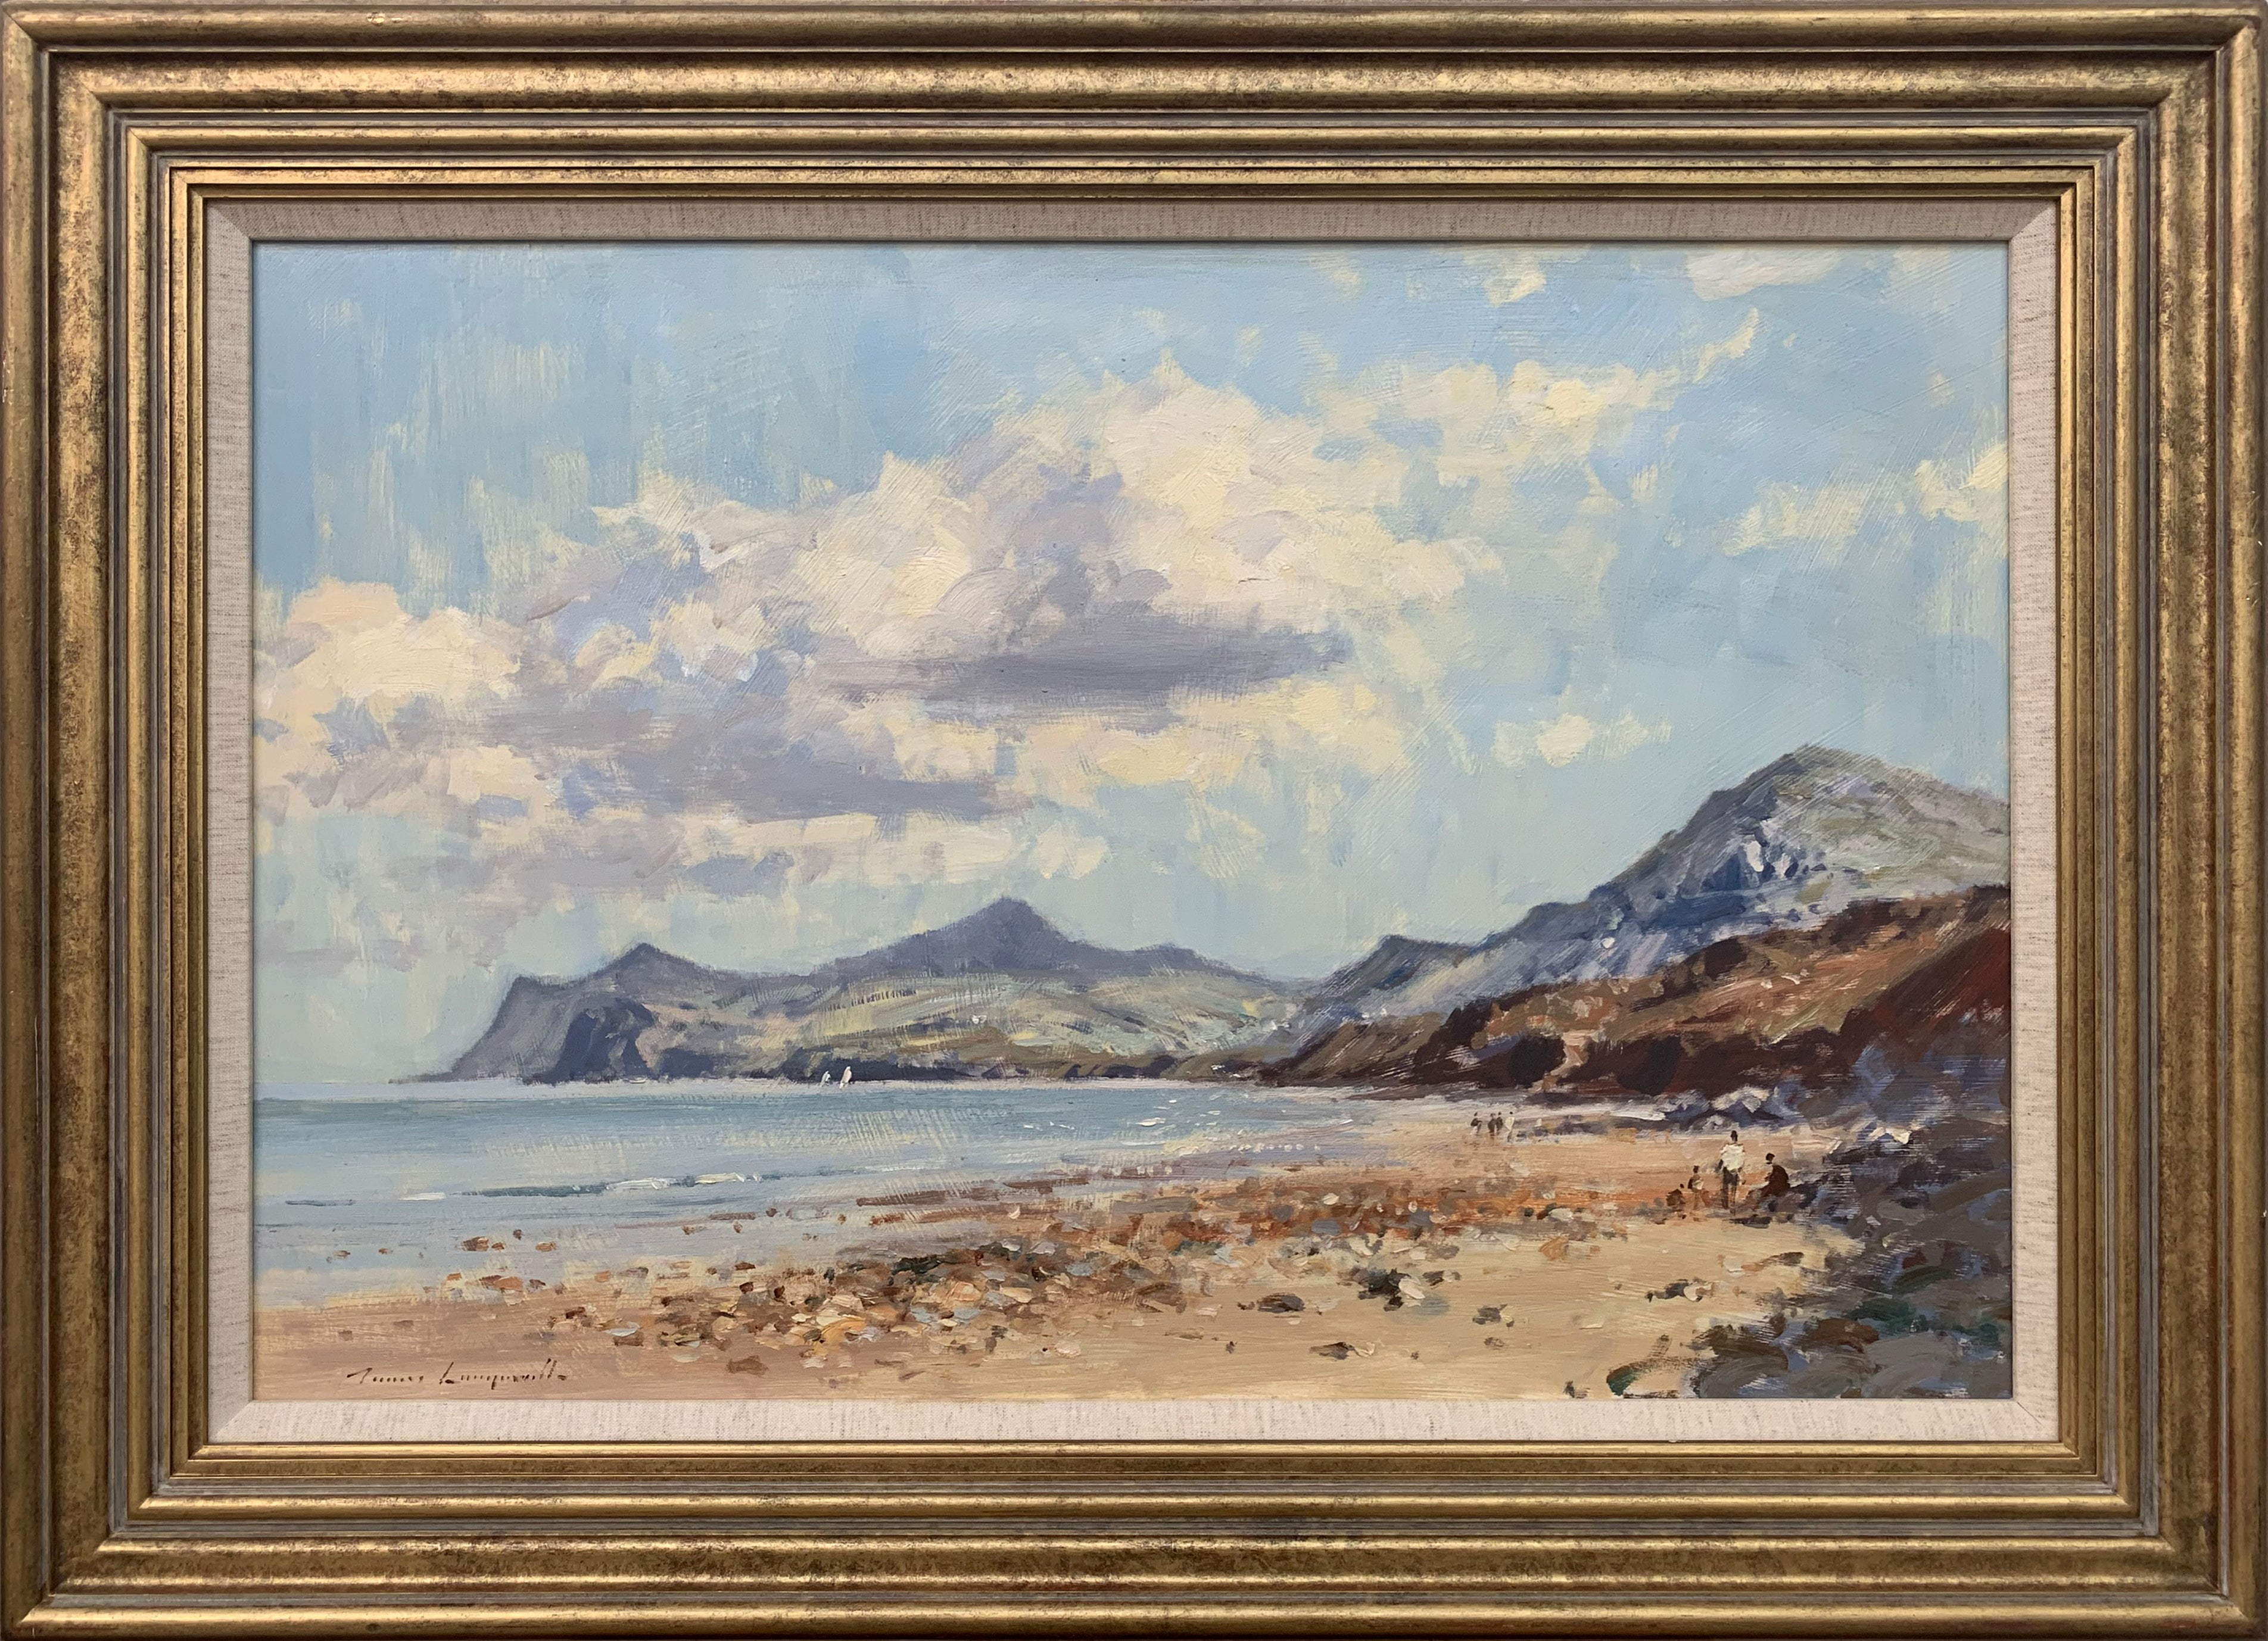 Landscape Seascape Painting of Coast from Nefyn in North Wales by British Artist